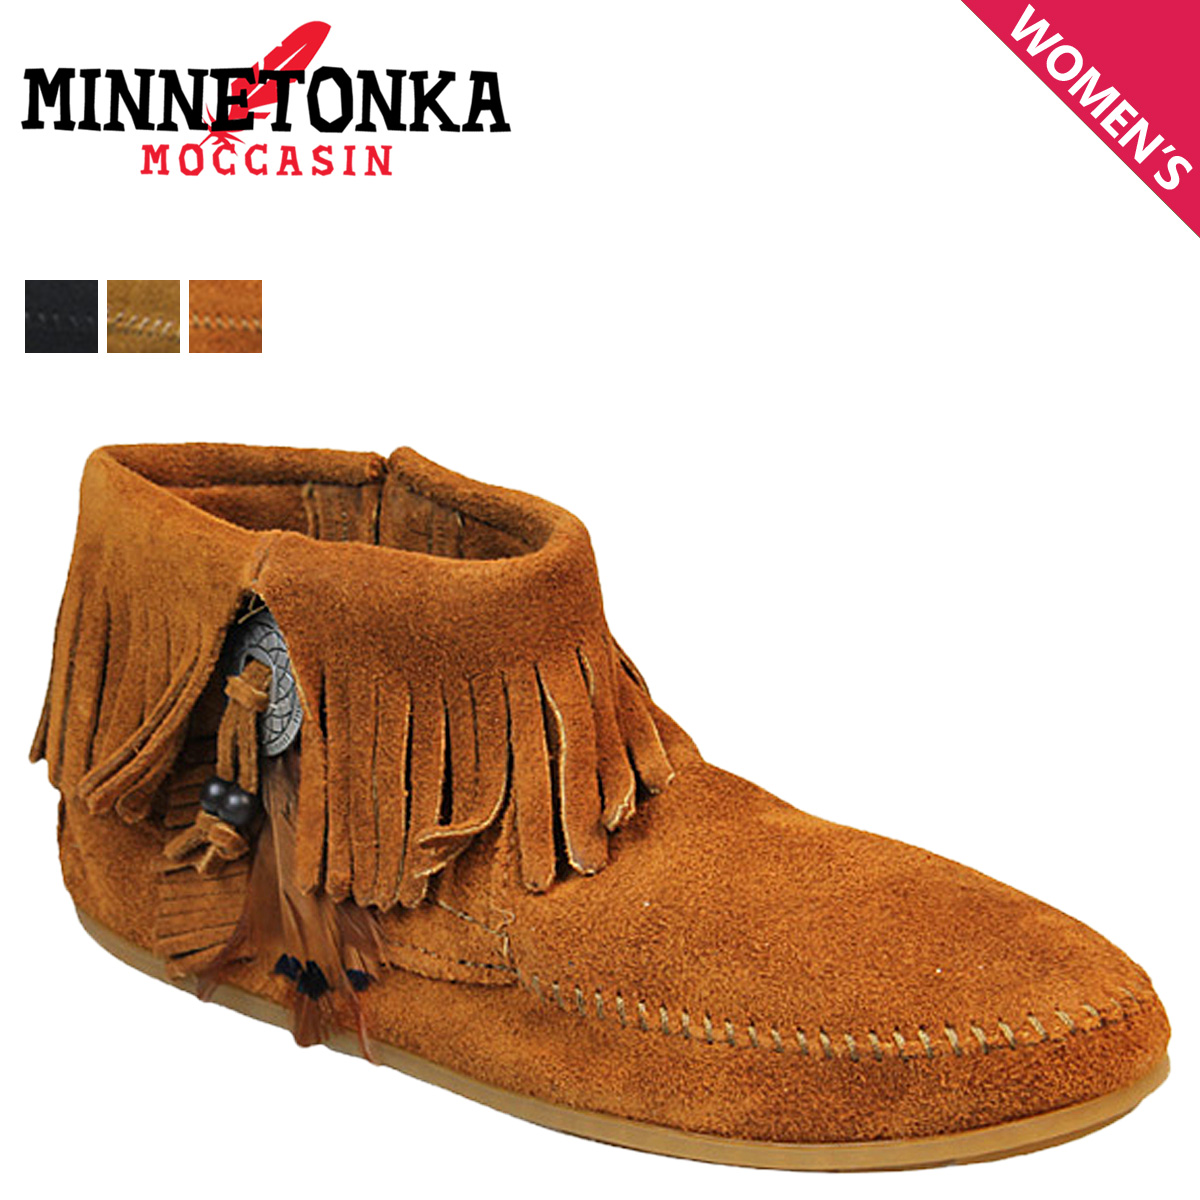 e1f1acf79d709 Mine Tonka MINNETONKA boots booties Lady's concho feather side zip CONCHO  FEATHER SIDE ZIP BOOT